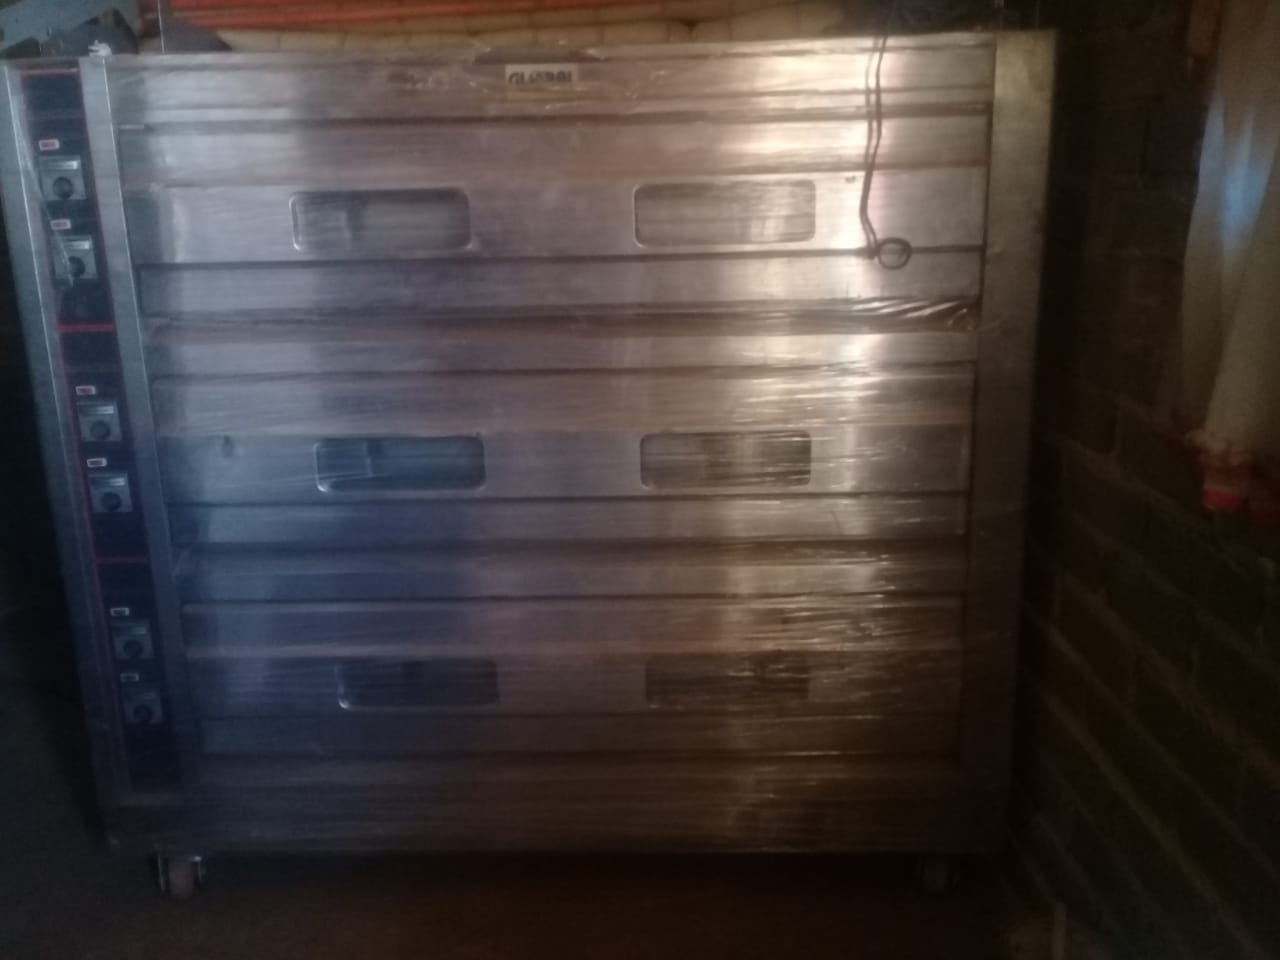 3 Deck baking oven, never been used.